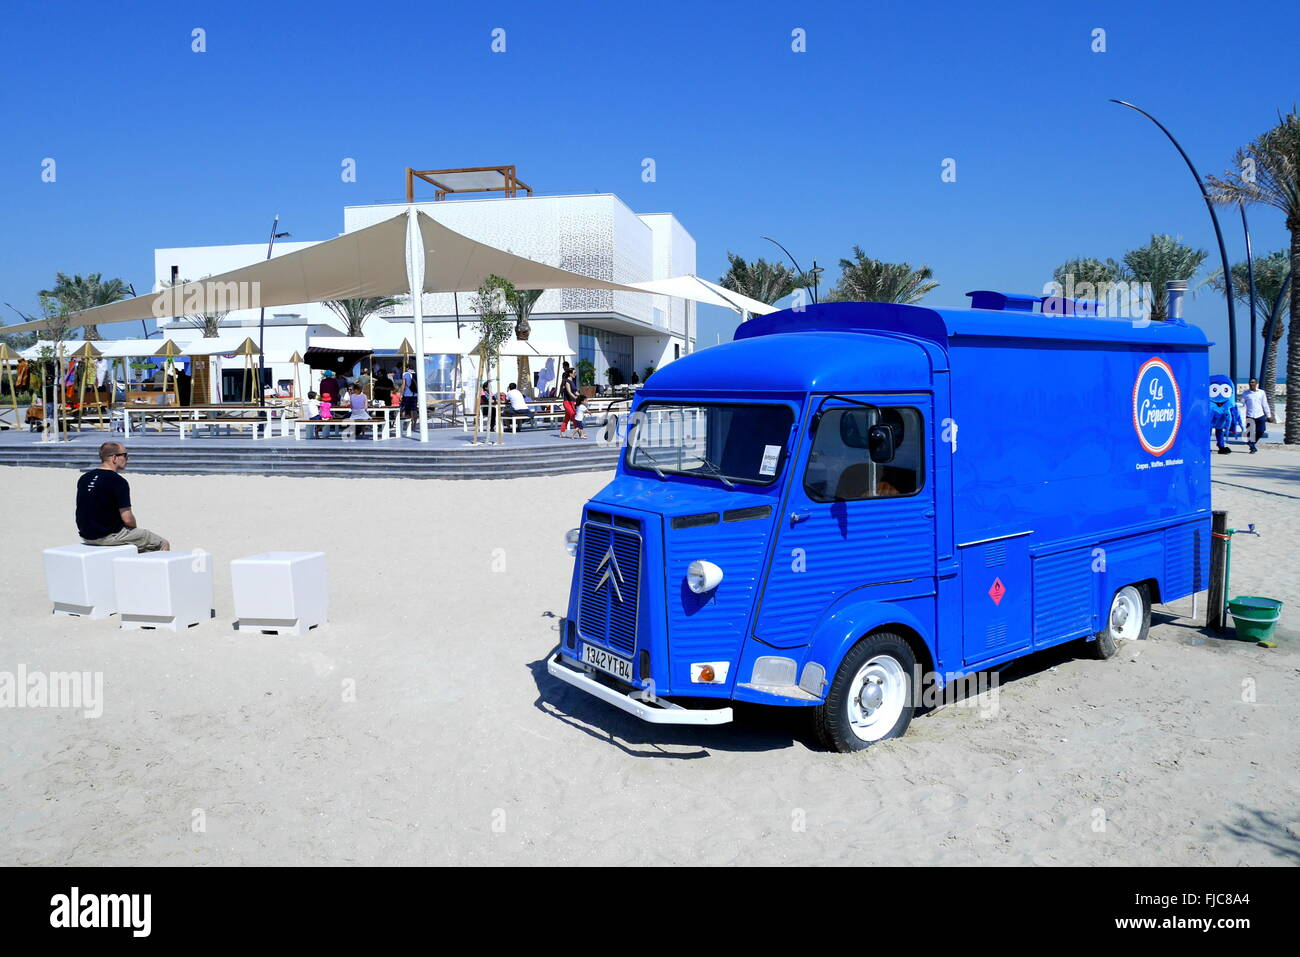 Citroen van selling pancakes in front of the marketing pavilion for the Marassi al Bahrain residential and retail - Stock Image